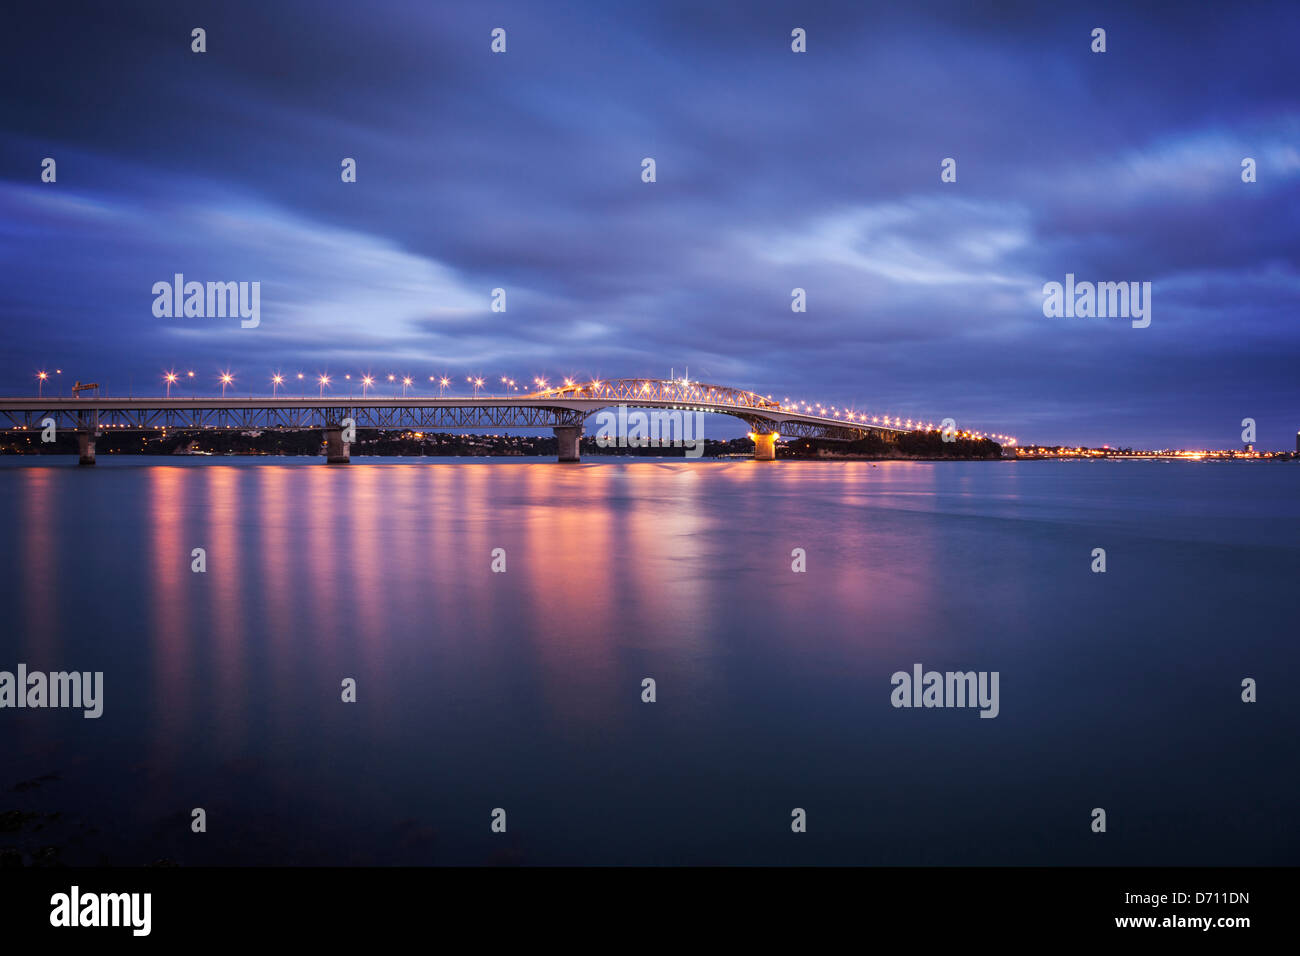 Auckland Harbour Bridge with its lights on at twilight. - Stock Image